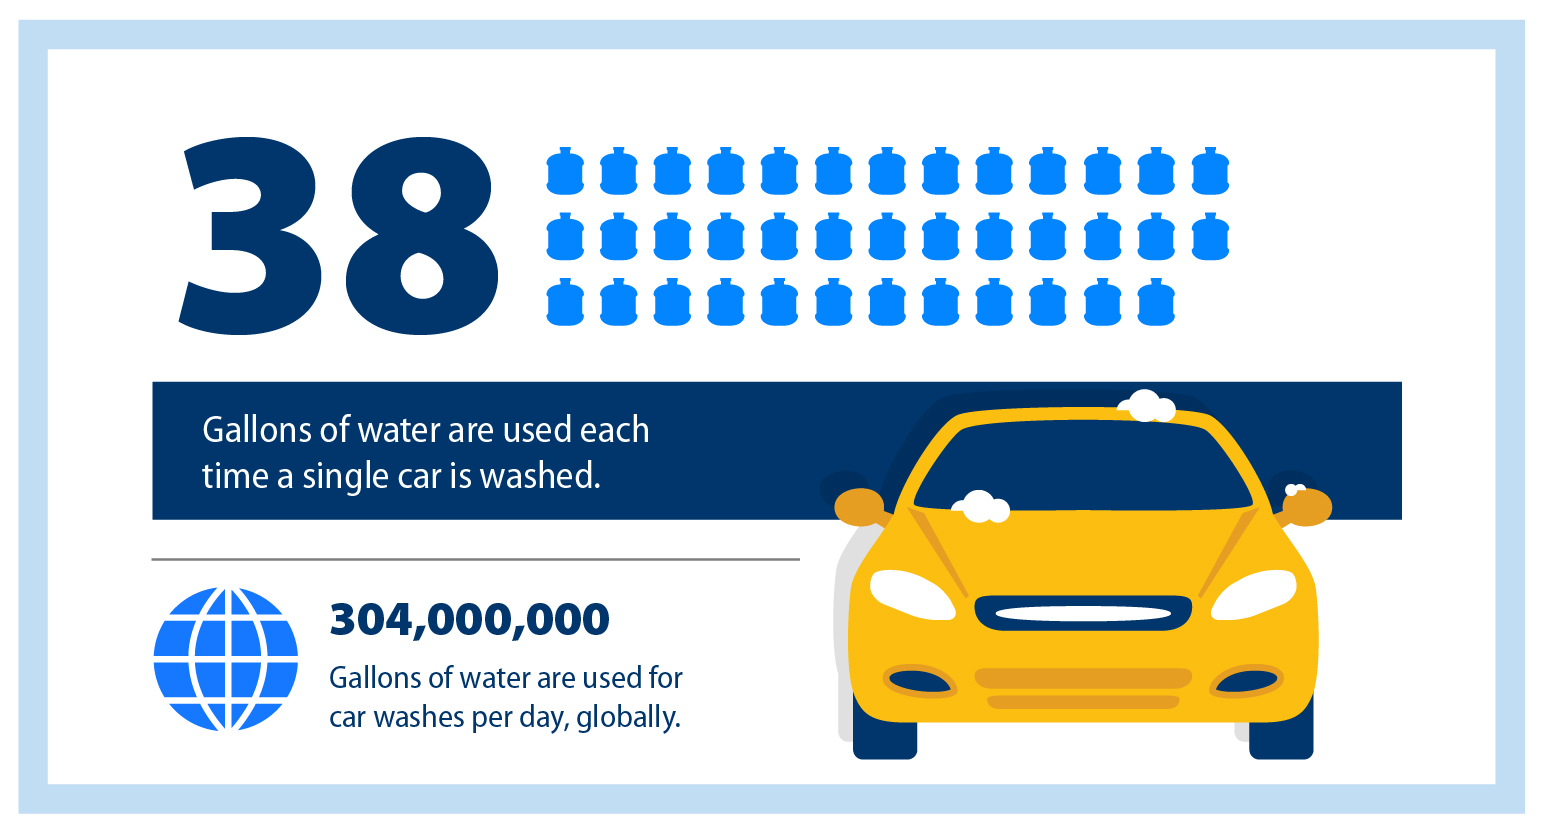 Roughly 38 gallons of water are used each time a single car is washed.